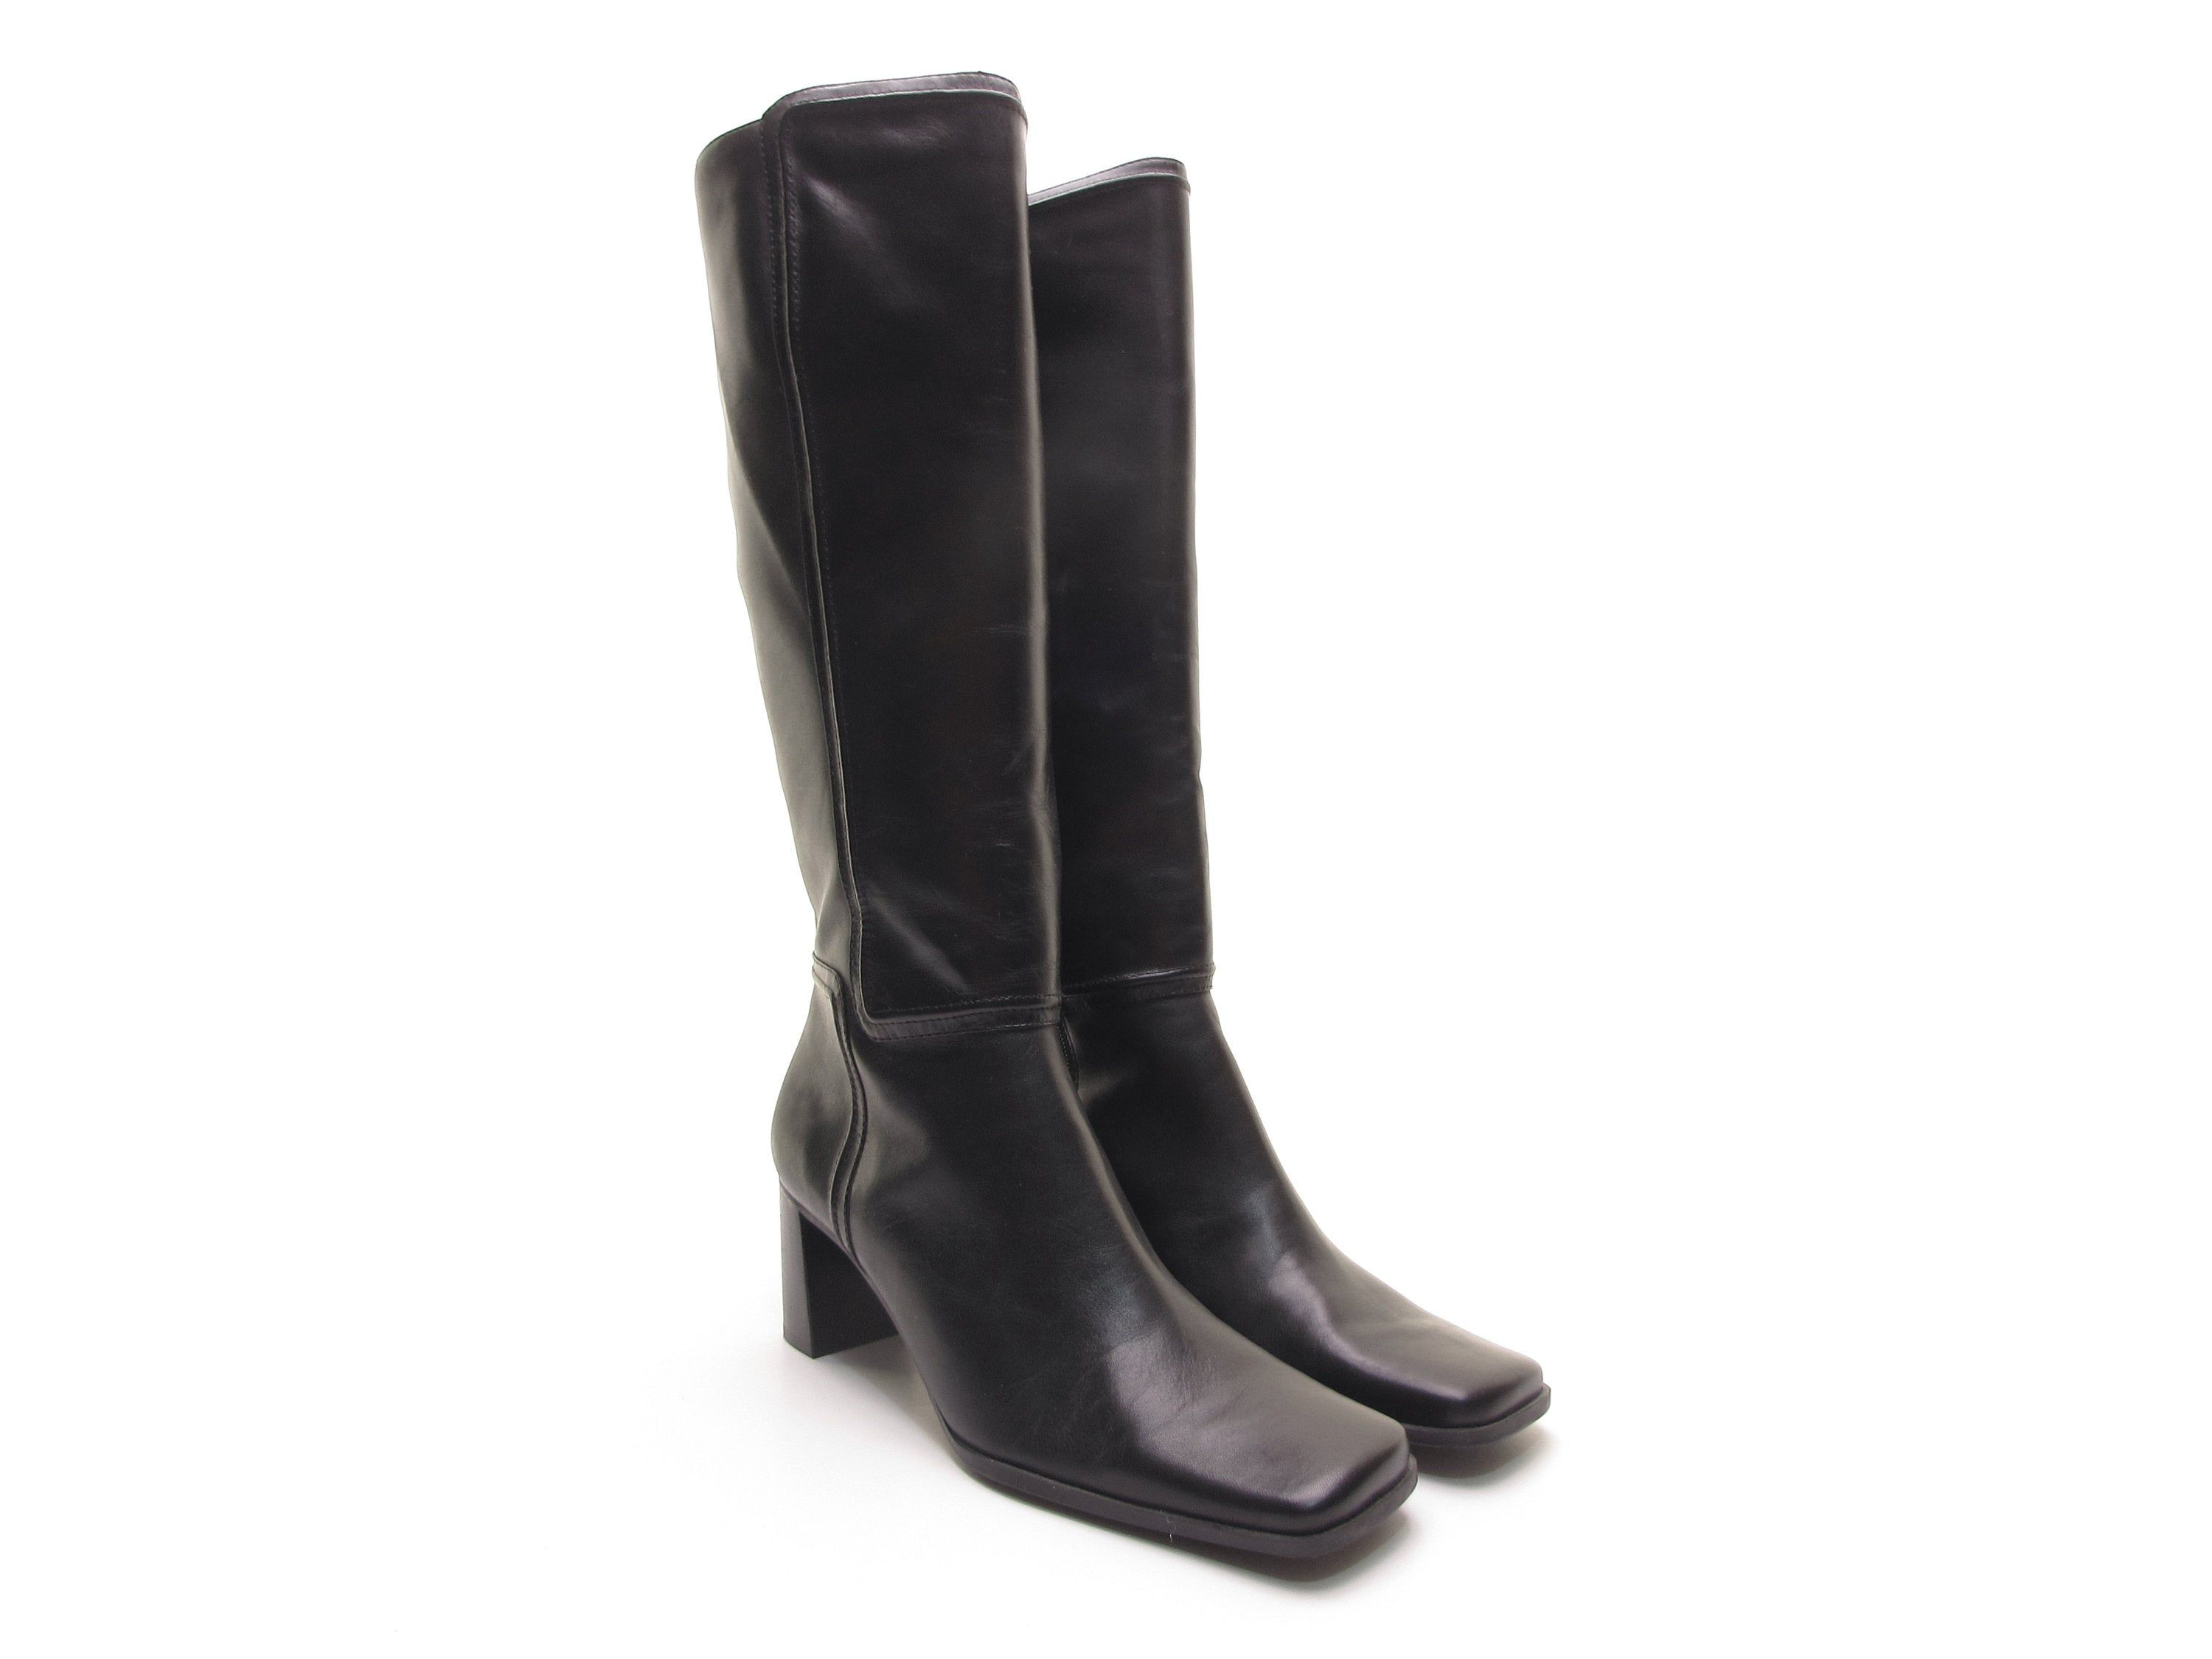 Chunky Heel Boot 90s Vintage Boots Square Toe Boots Leather Tall Boots Knee High Boots Rubber Soles Block Heel Boots Chunky Heels Boots Fashionable Snow Boots [ 2250 x 3000 Pixel ]